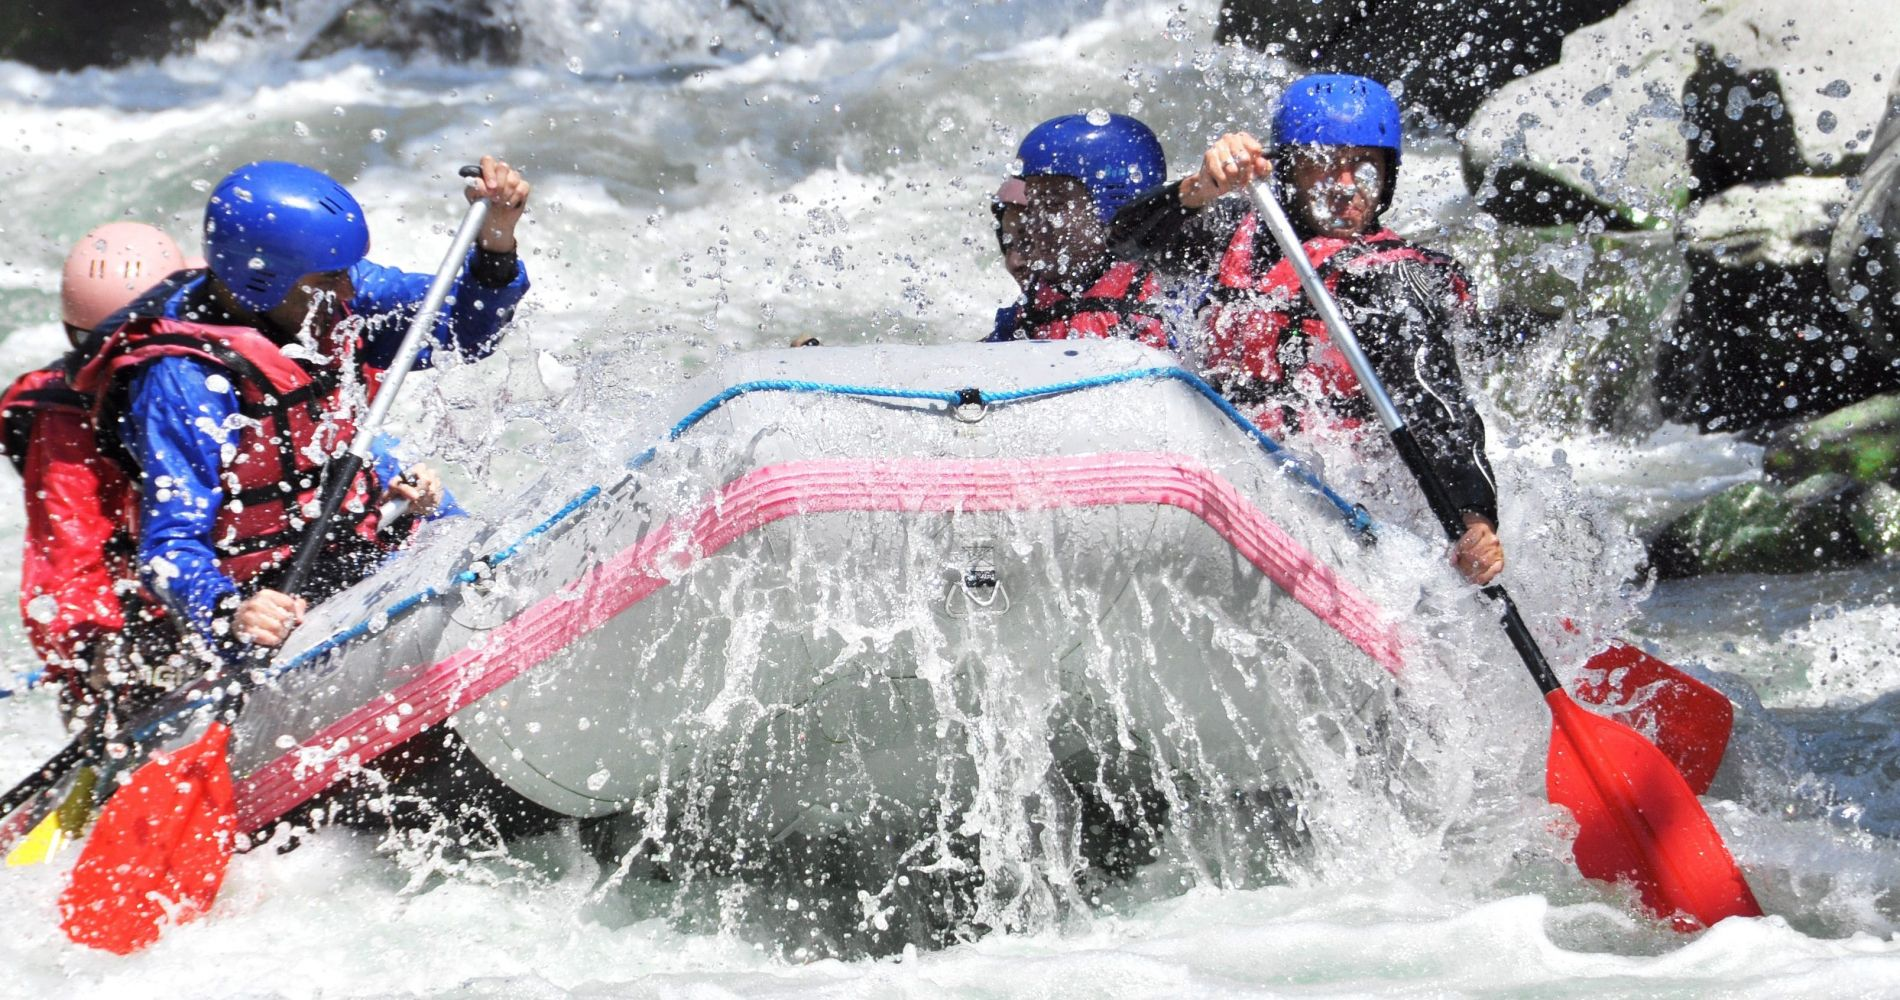 Thrilling White Water Rafting in the River Tummel in Scotland